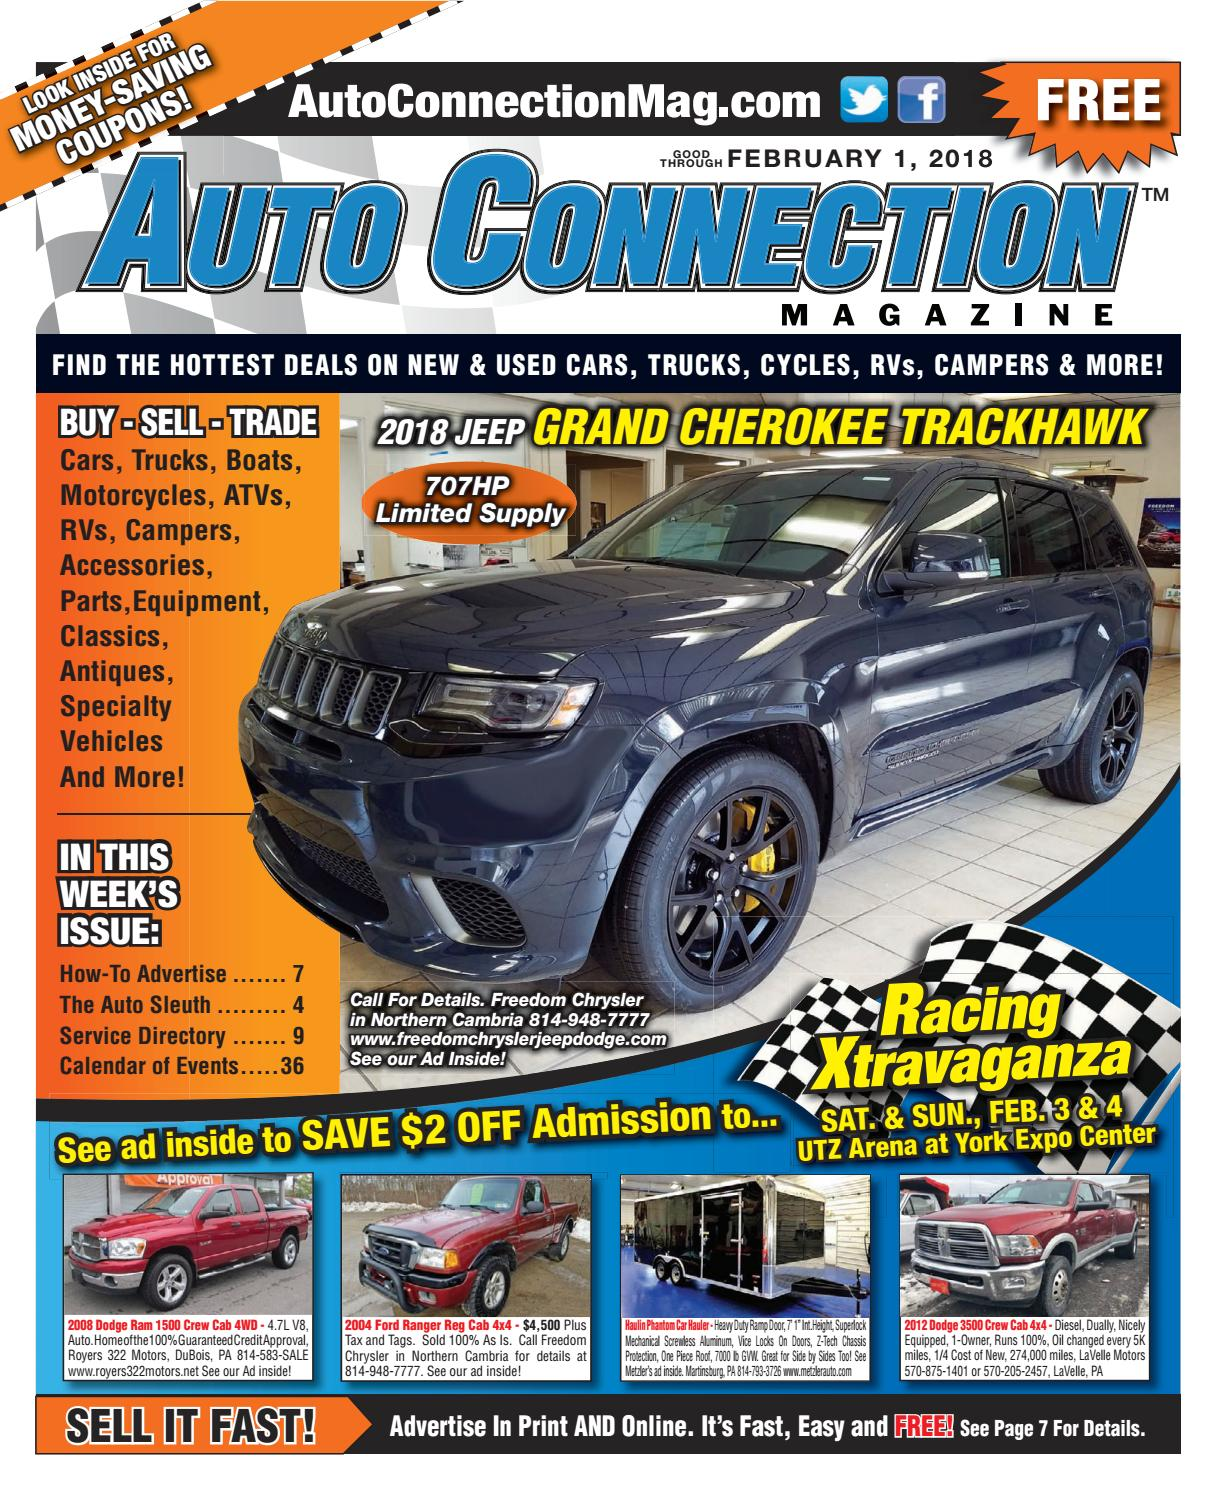 02-01-18 Auto Connection Magazine by Auto Connection Magazine - issuu